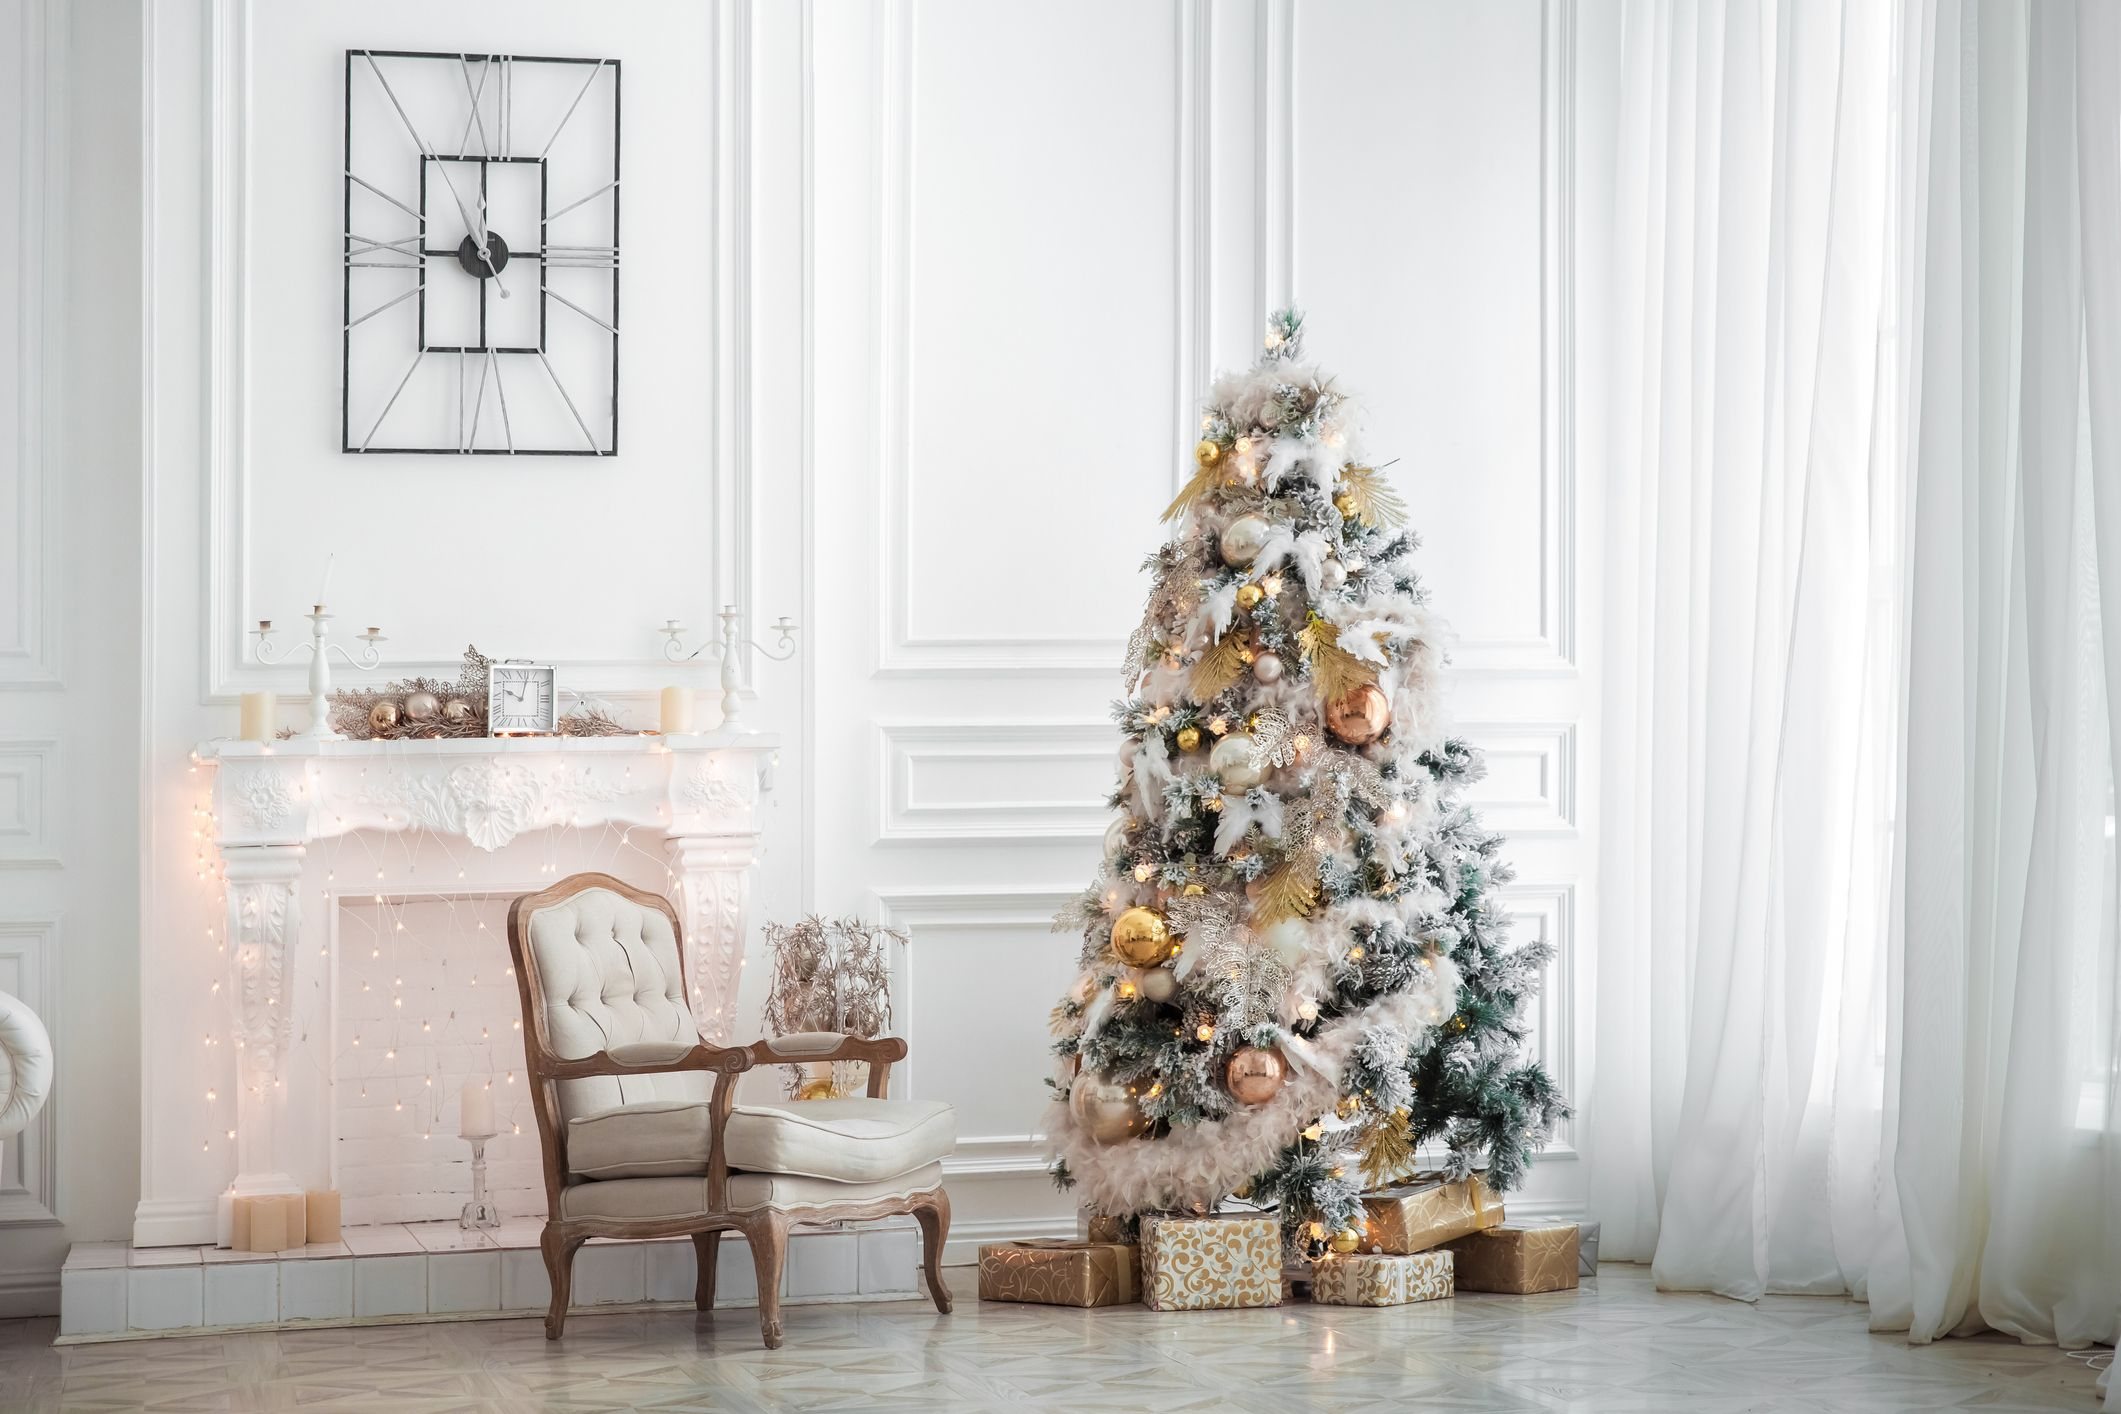 20+ White Christmas Tree Decorations for the Most Magical Holiday Display